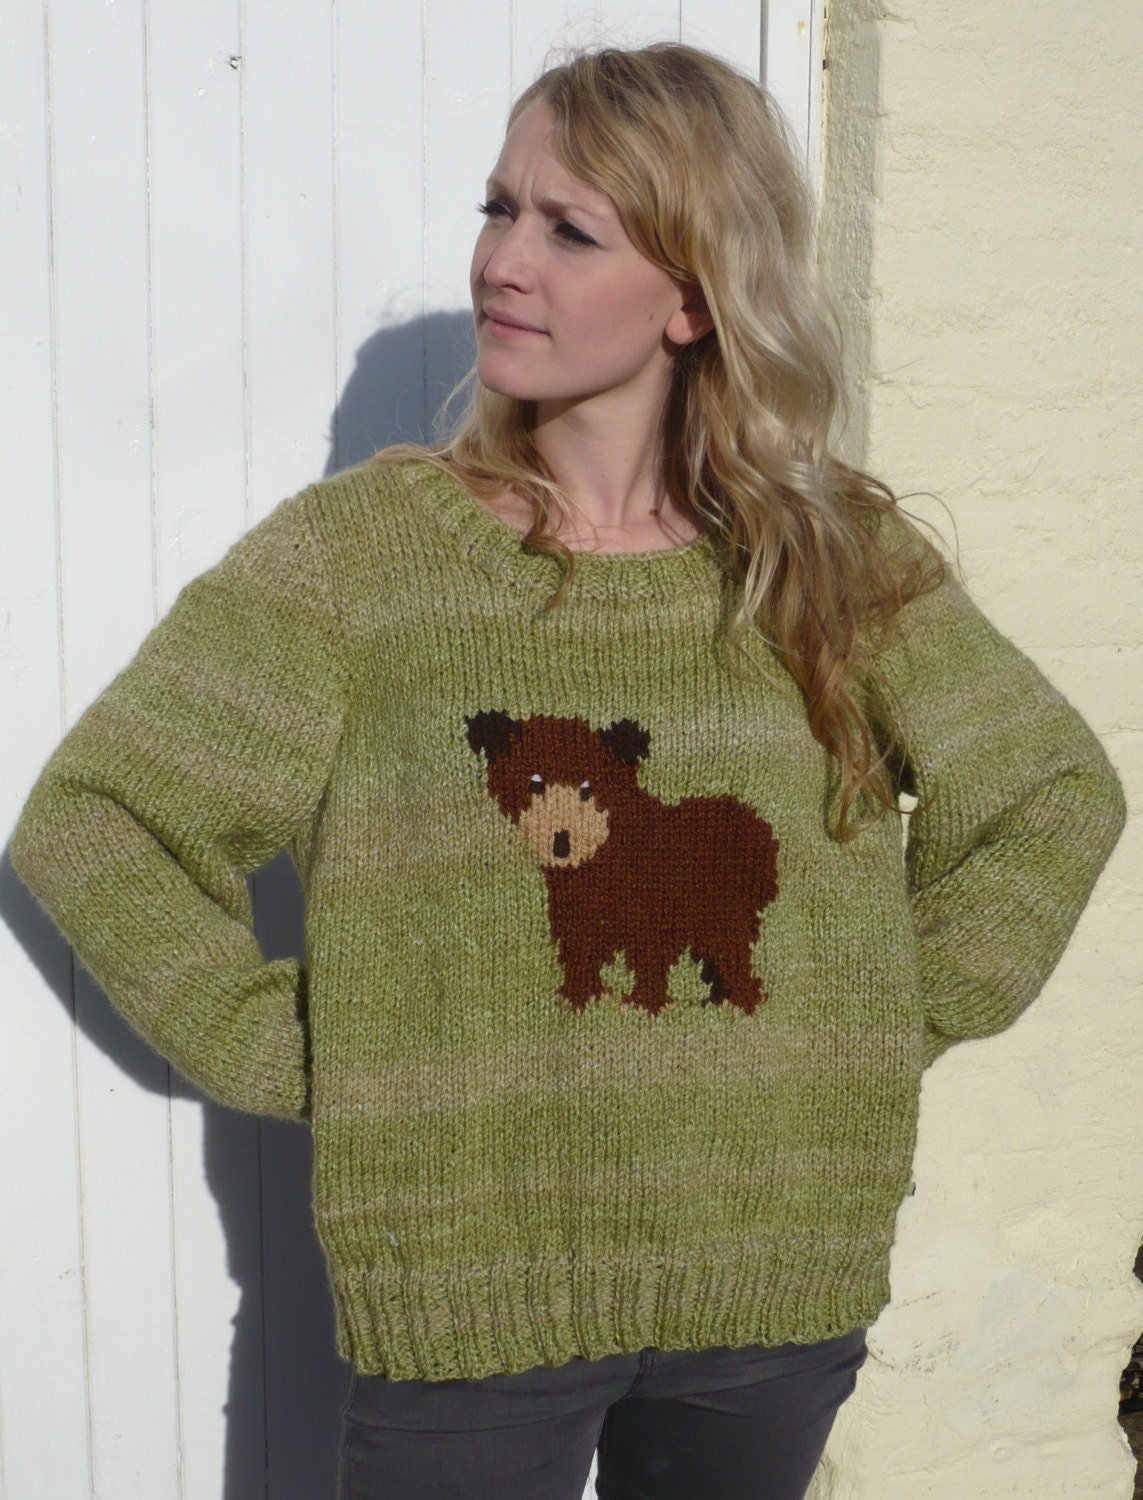 Chunky Knit Jumper Pattern : Little Brown Bear Jumper Chunky Knitting Pattern by BernieBeeKnits